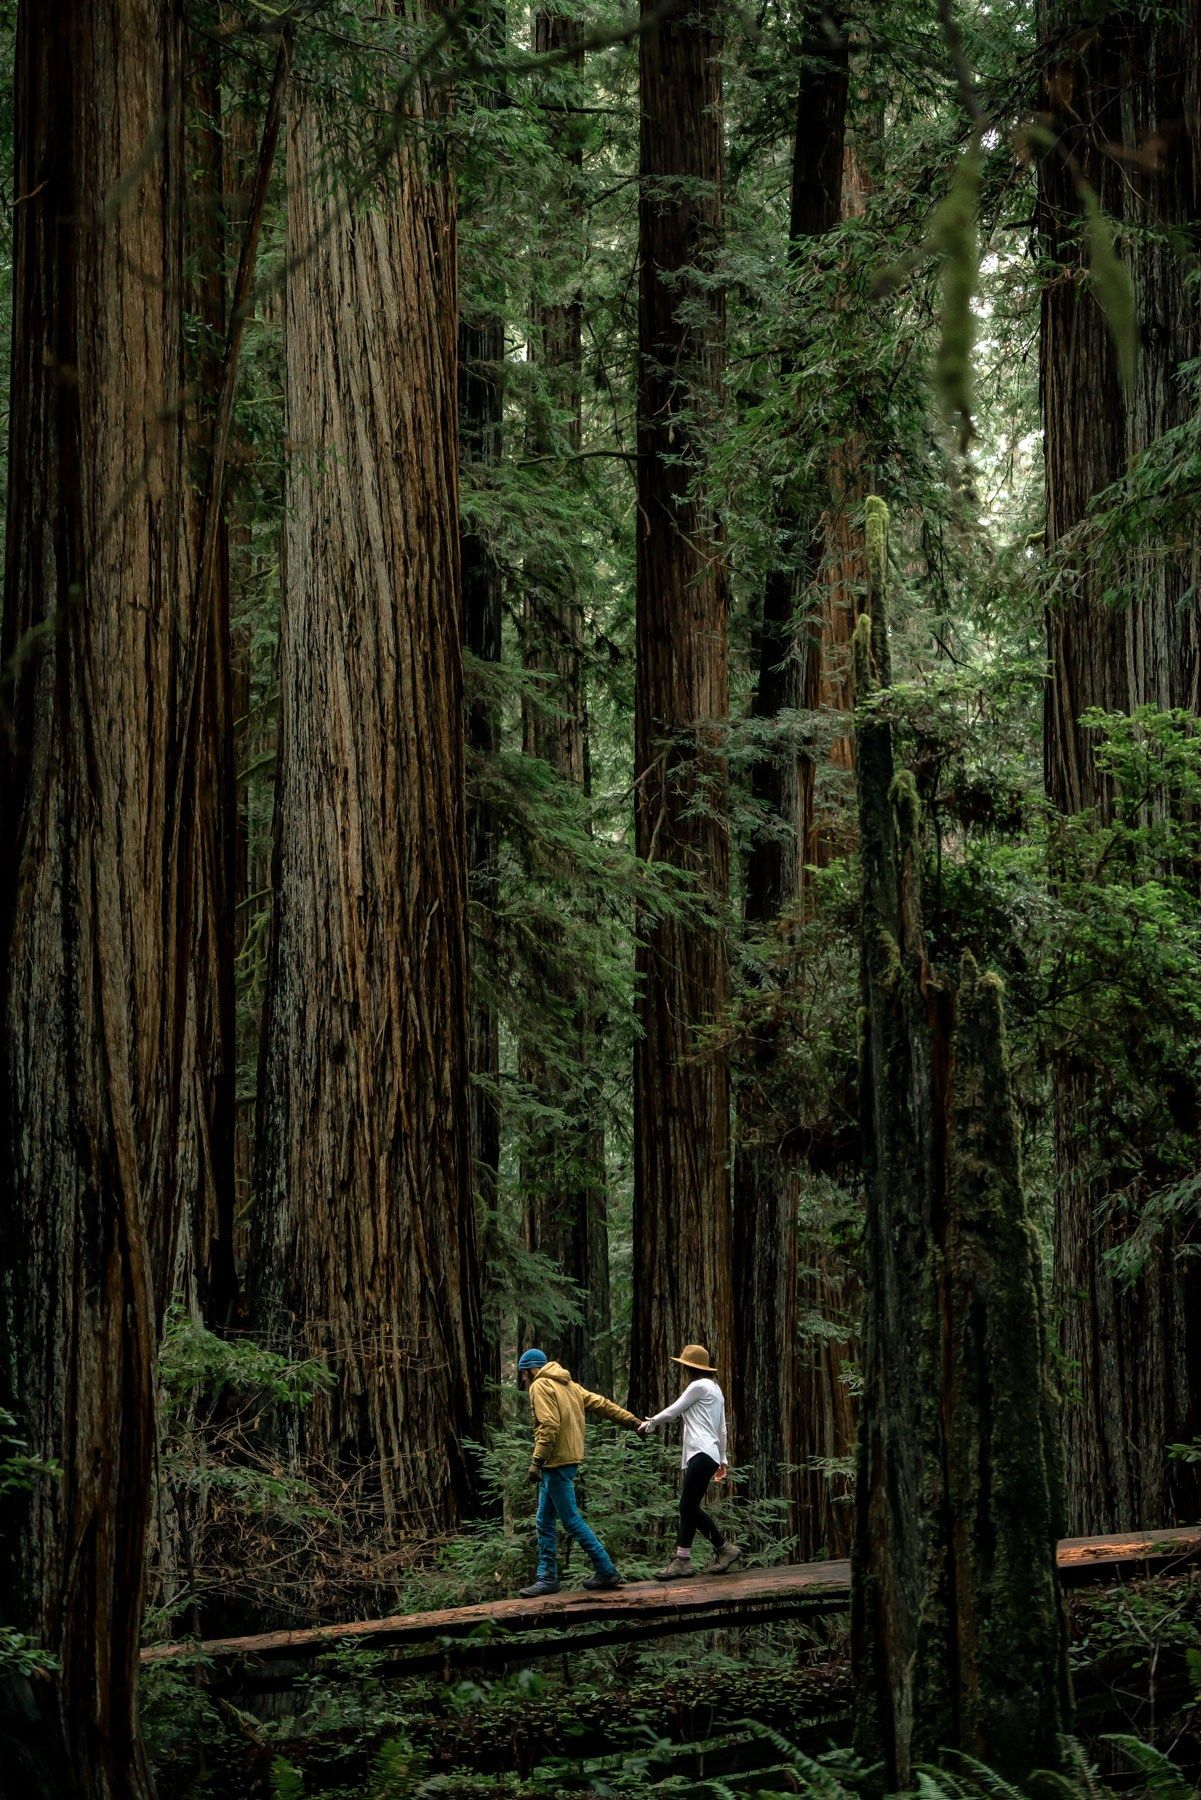 Helpful Illustrative Guide to Redwood National Park | National Park Travel #redwoodnationalpark #redwoodnp #redwood #visitcalifornia #nature #nationalparks #besthikes